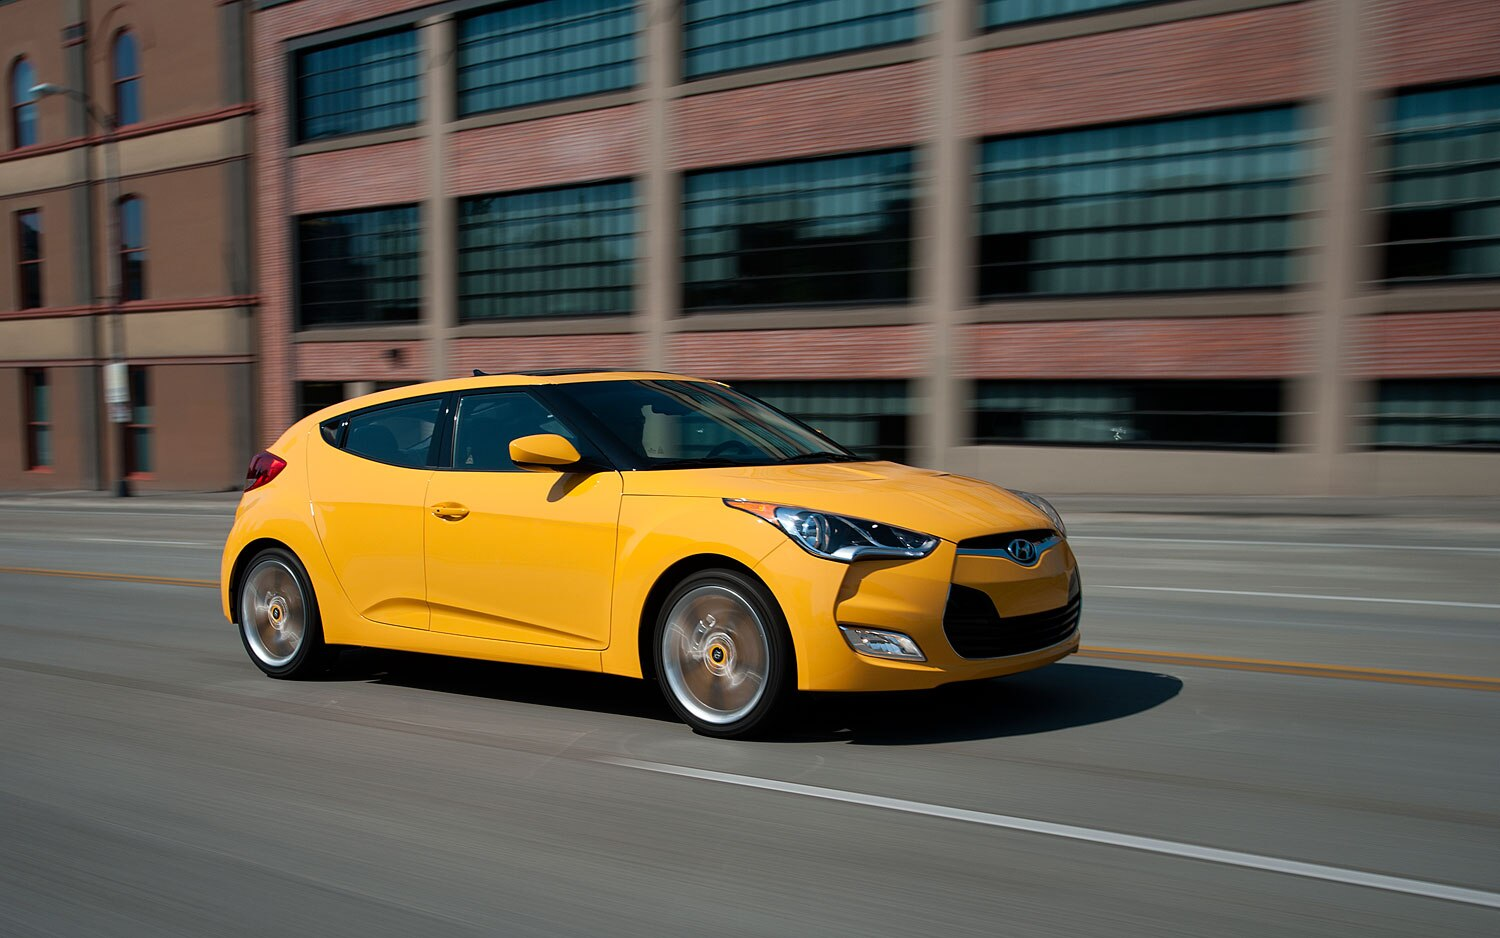 2012 Hyundai Veloster Yellow Right Front 11